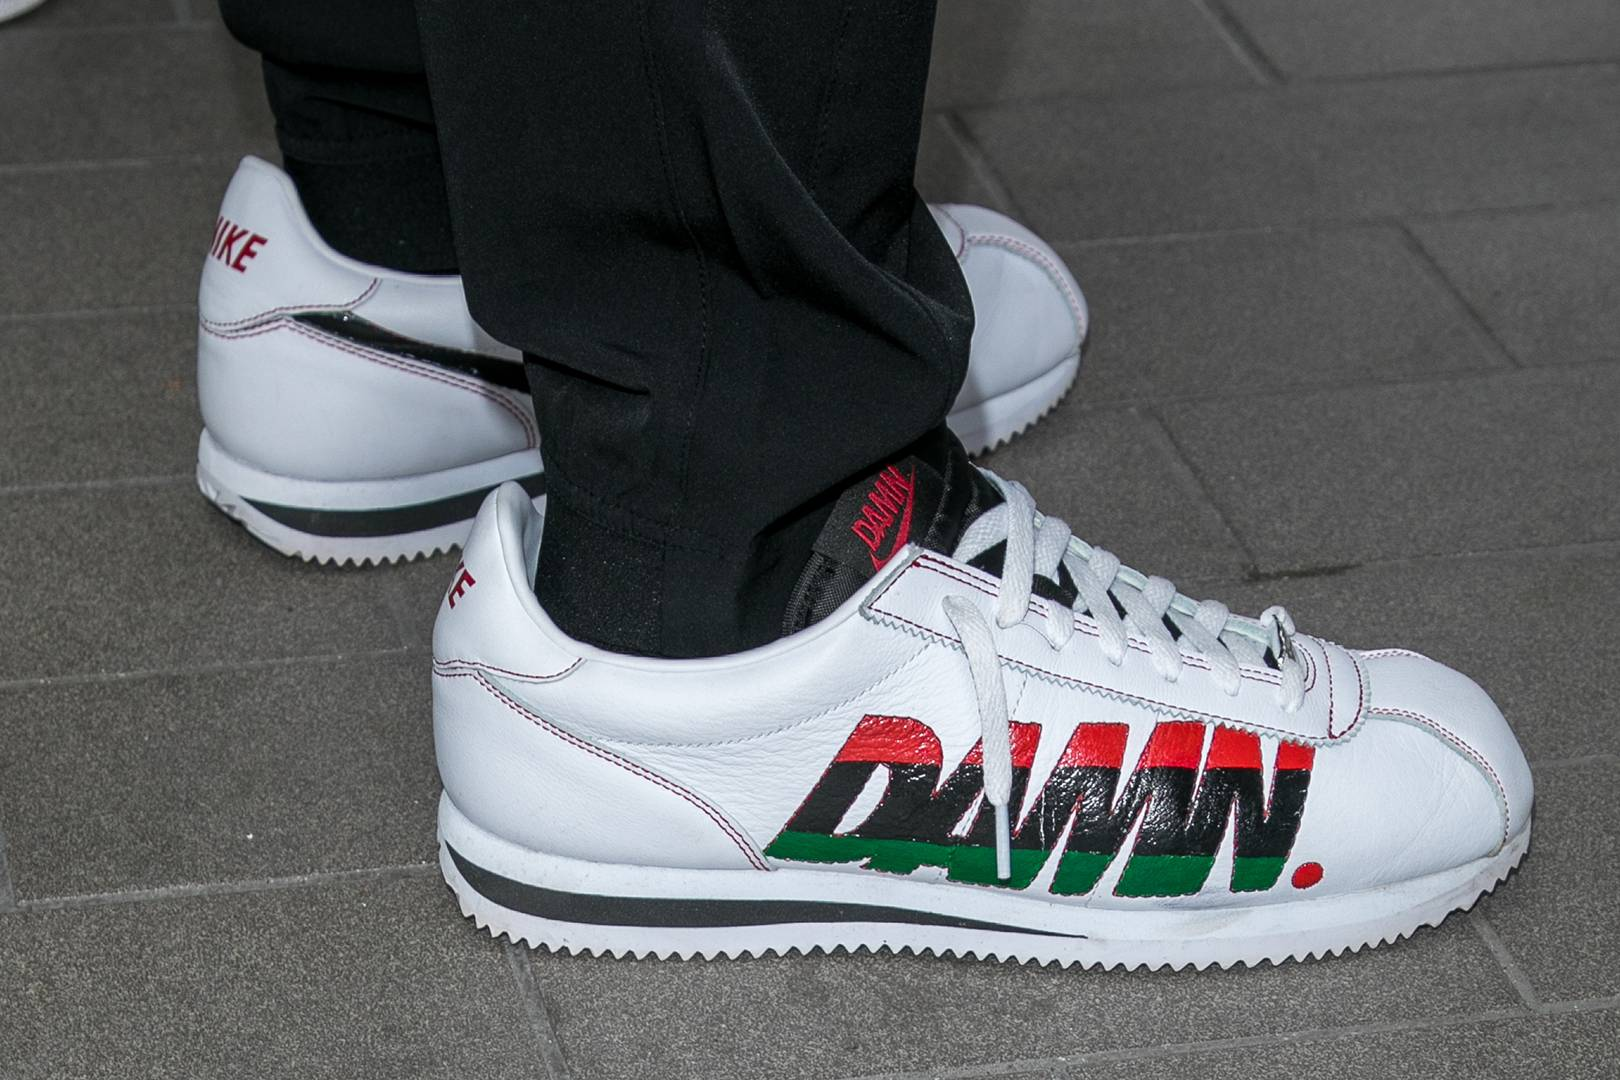 b85e839d77a Spike Lee trainers: the director is a certified sneakerhead | British GQ